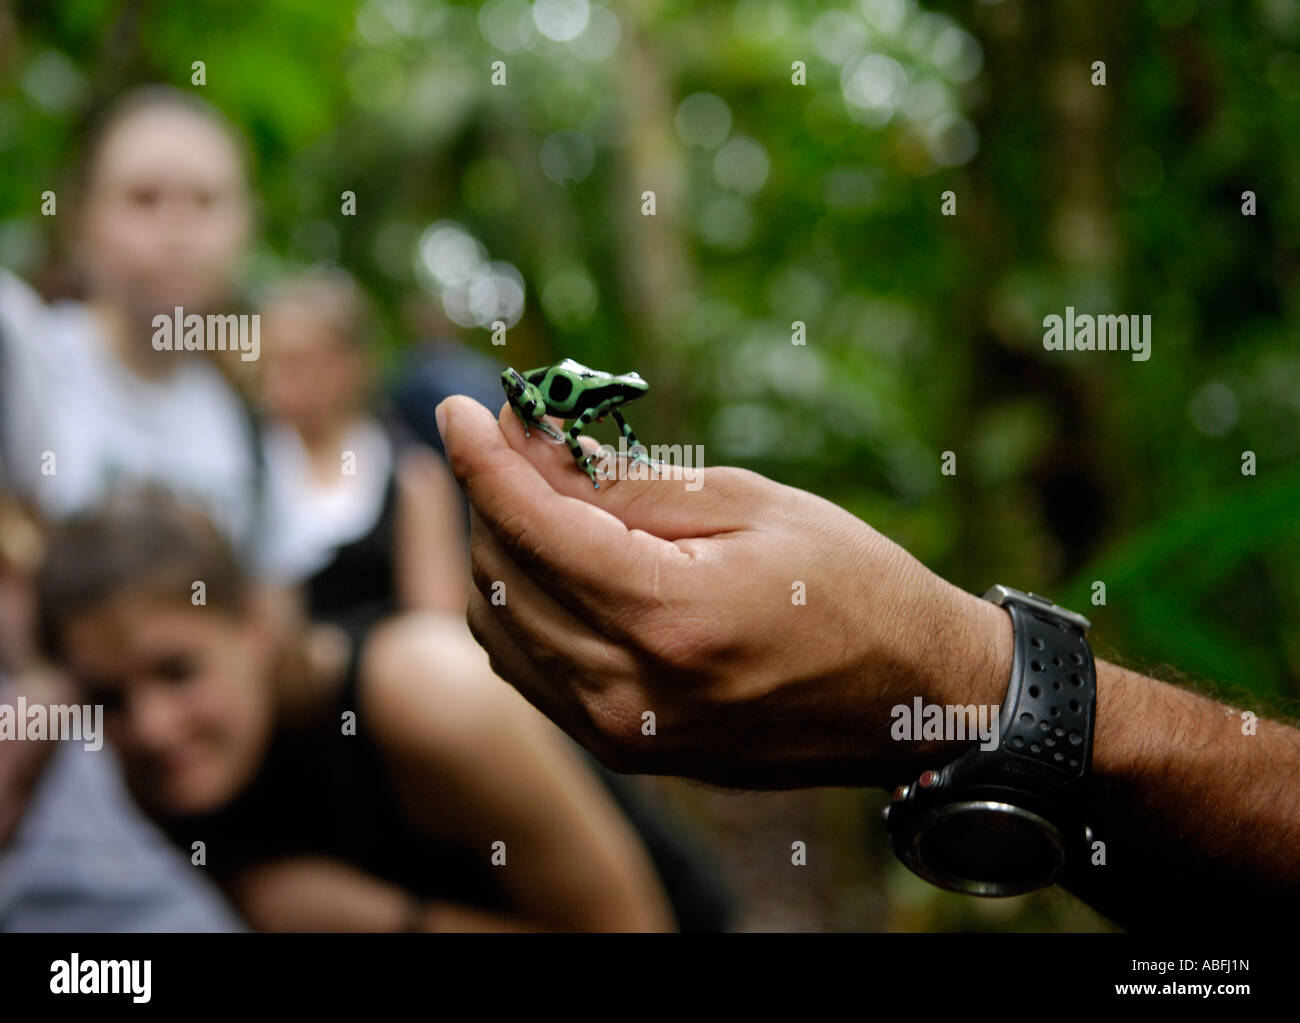 Ecotourists observing a green and black poison frog on a guided rainforest walk, La selva, Costa Rica, ecotourism - Stock Image